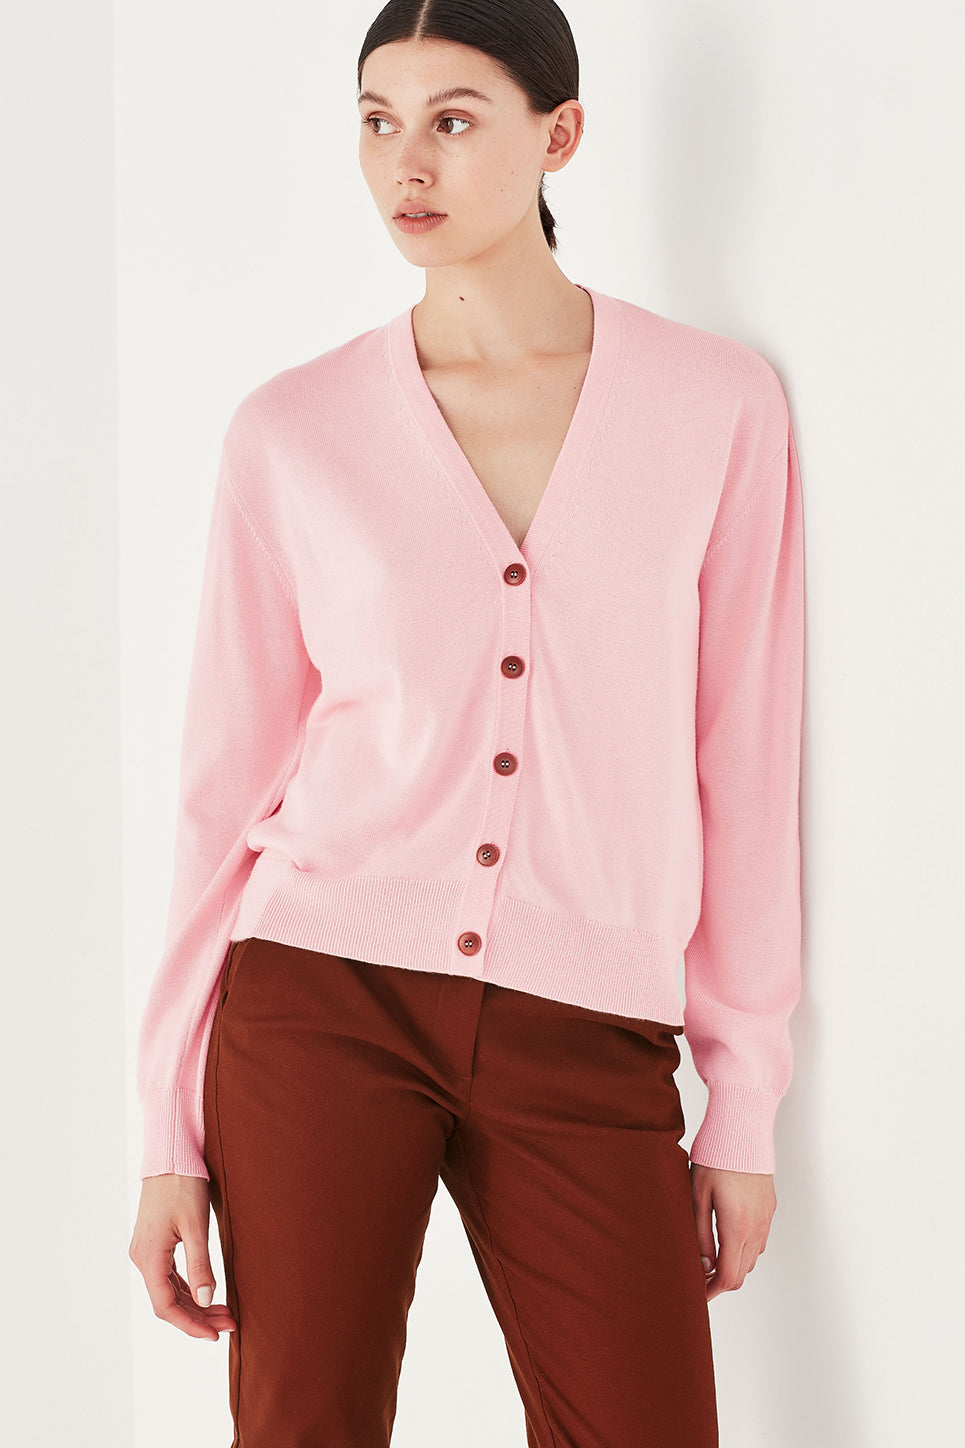 The Clover Cardi in Peony